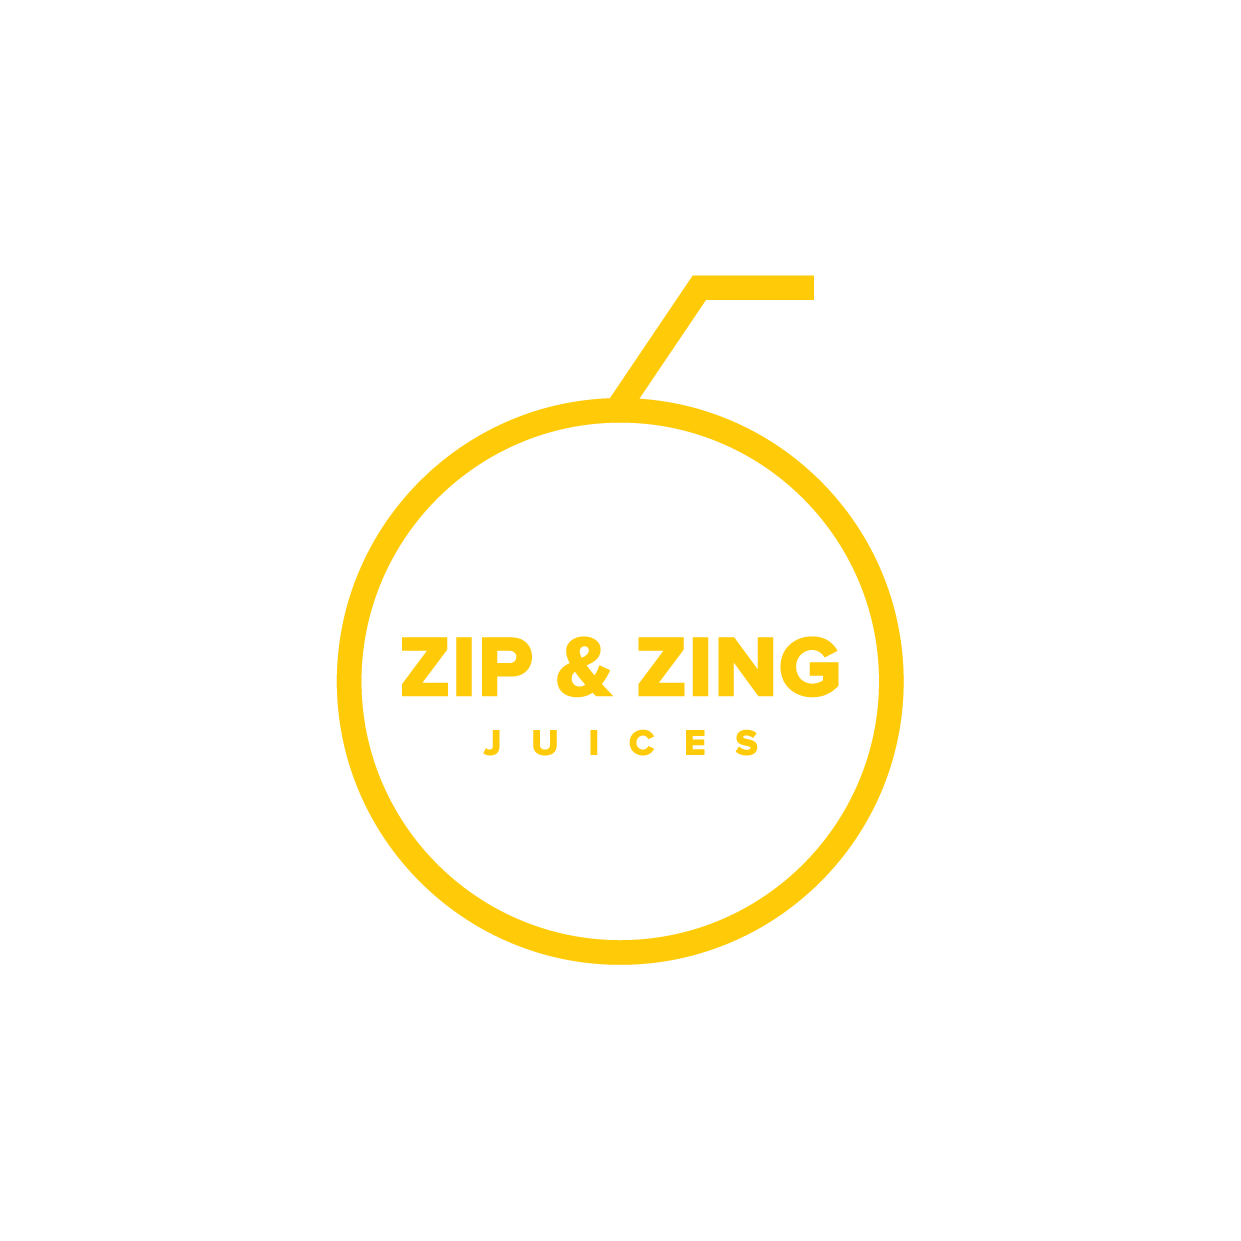 ZIP & ZING JUICES